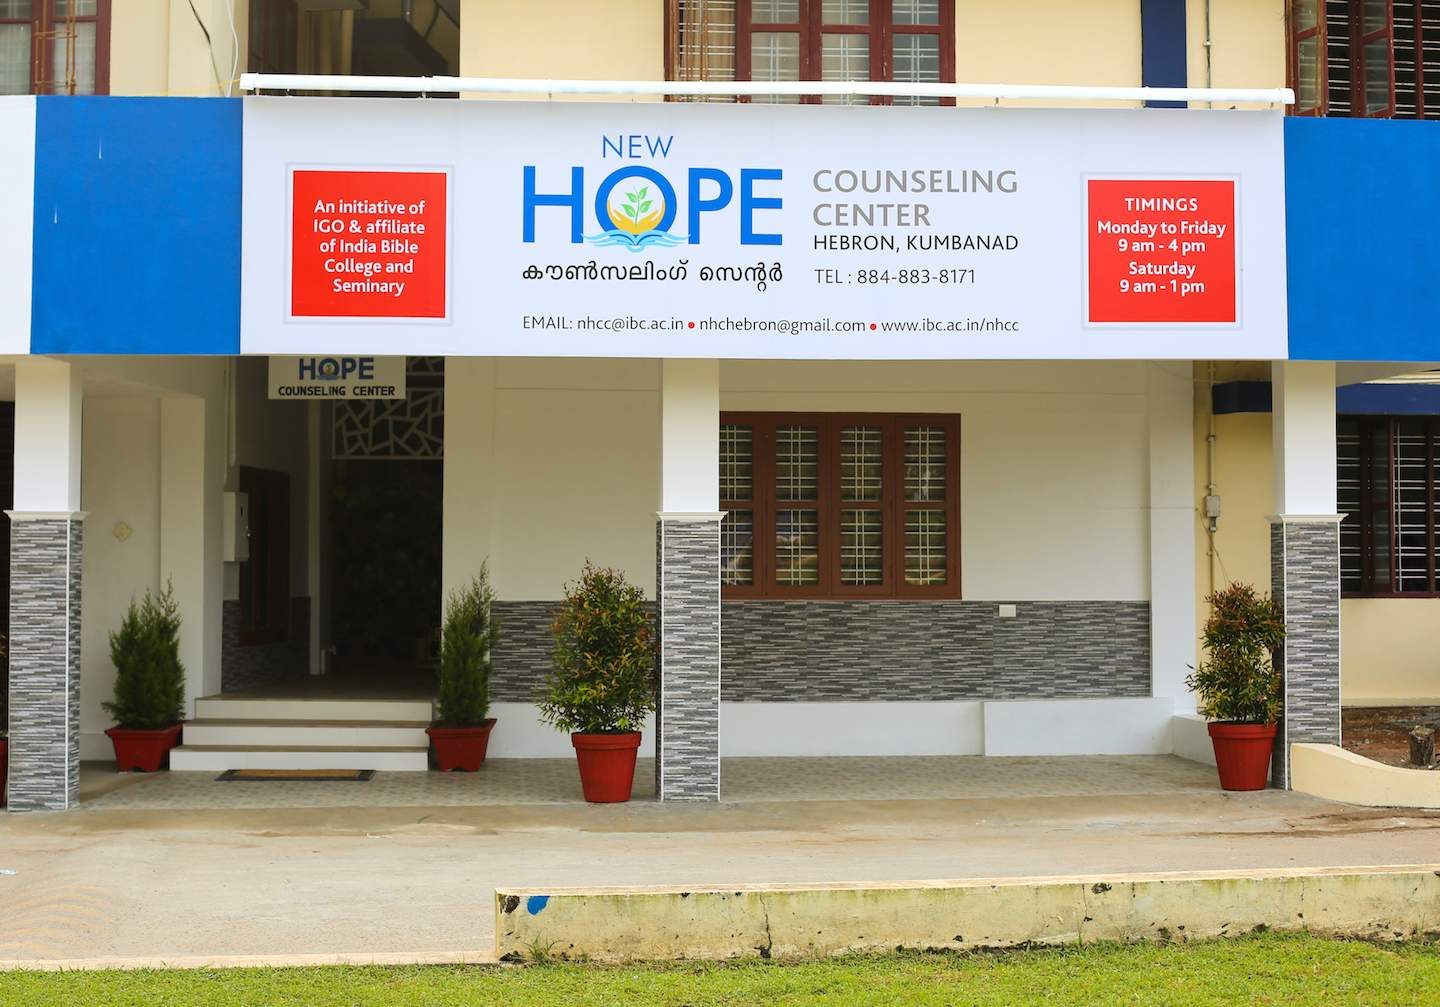 New Hope Counseling Center is an initiative of India Gospel Outreach and India Bible College and Seminary.